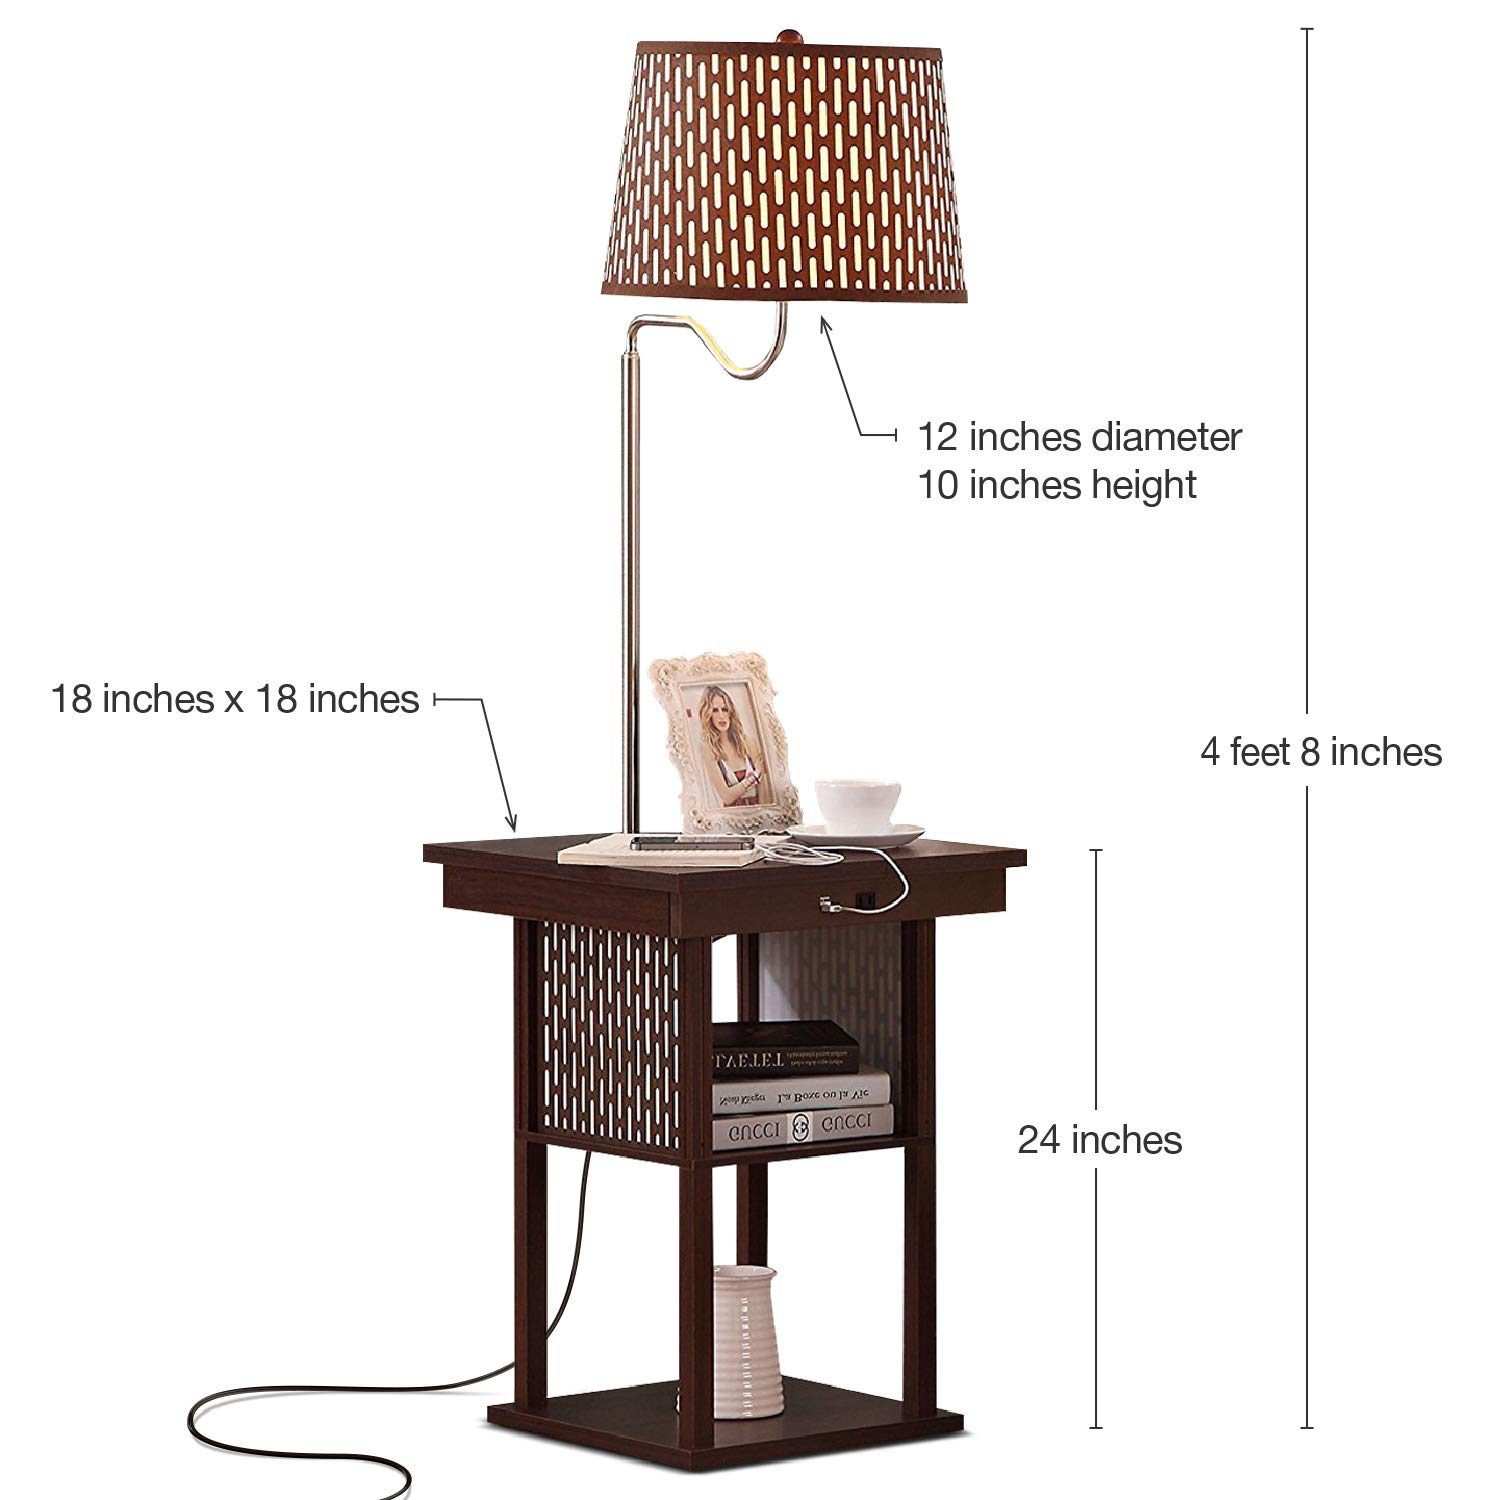 Astonishing Brightech Madison Led Floor Lamp With Usb Charging Ports Mid Century Modern Bedside Nighstand Table End Table With Shelves For Living Room Sofas Andrewgaddart Wooden Chair Designs For Living Room Andrewgaddartcom